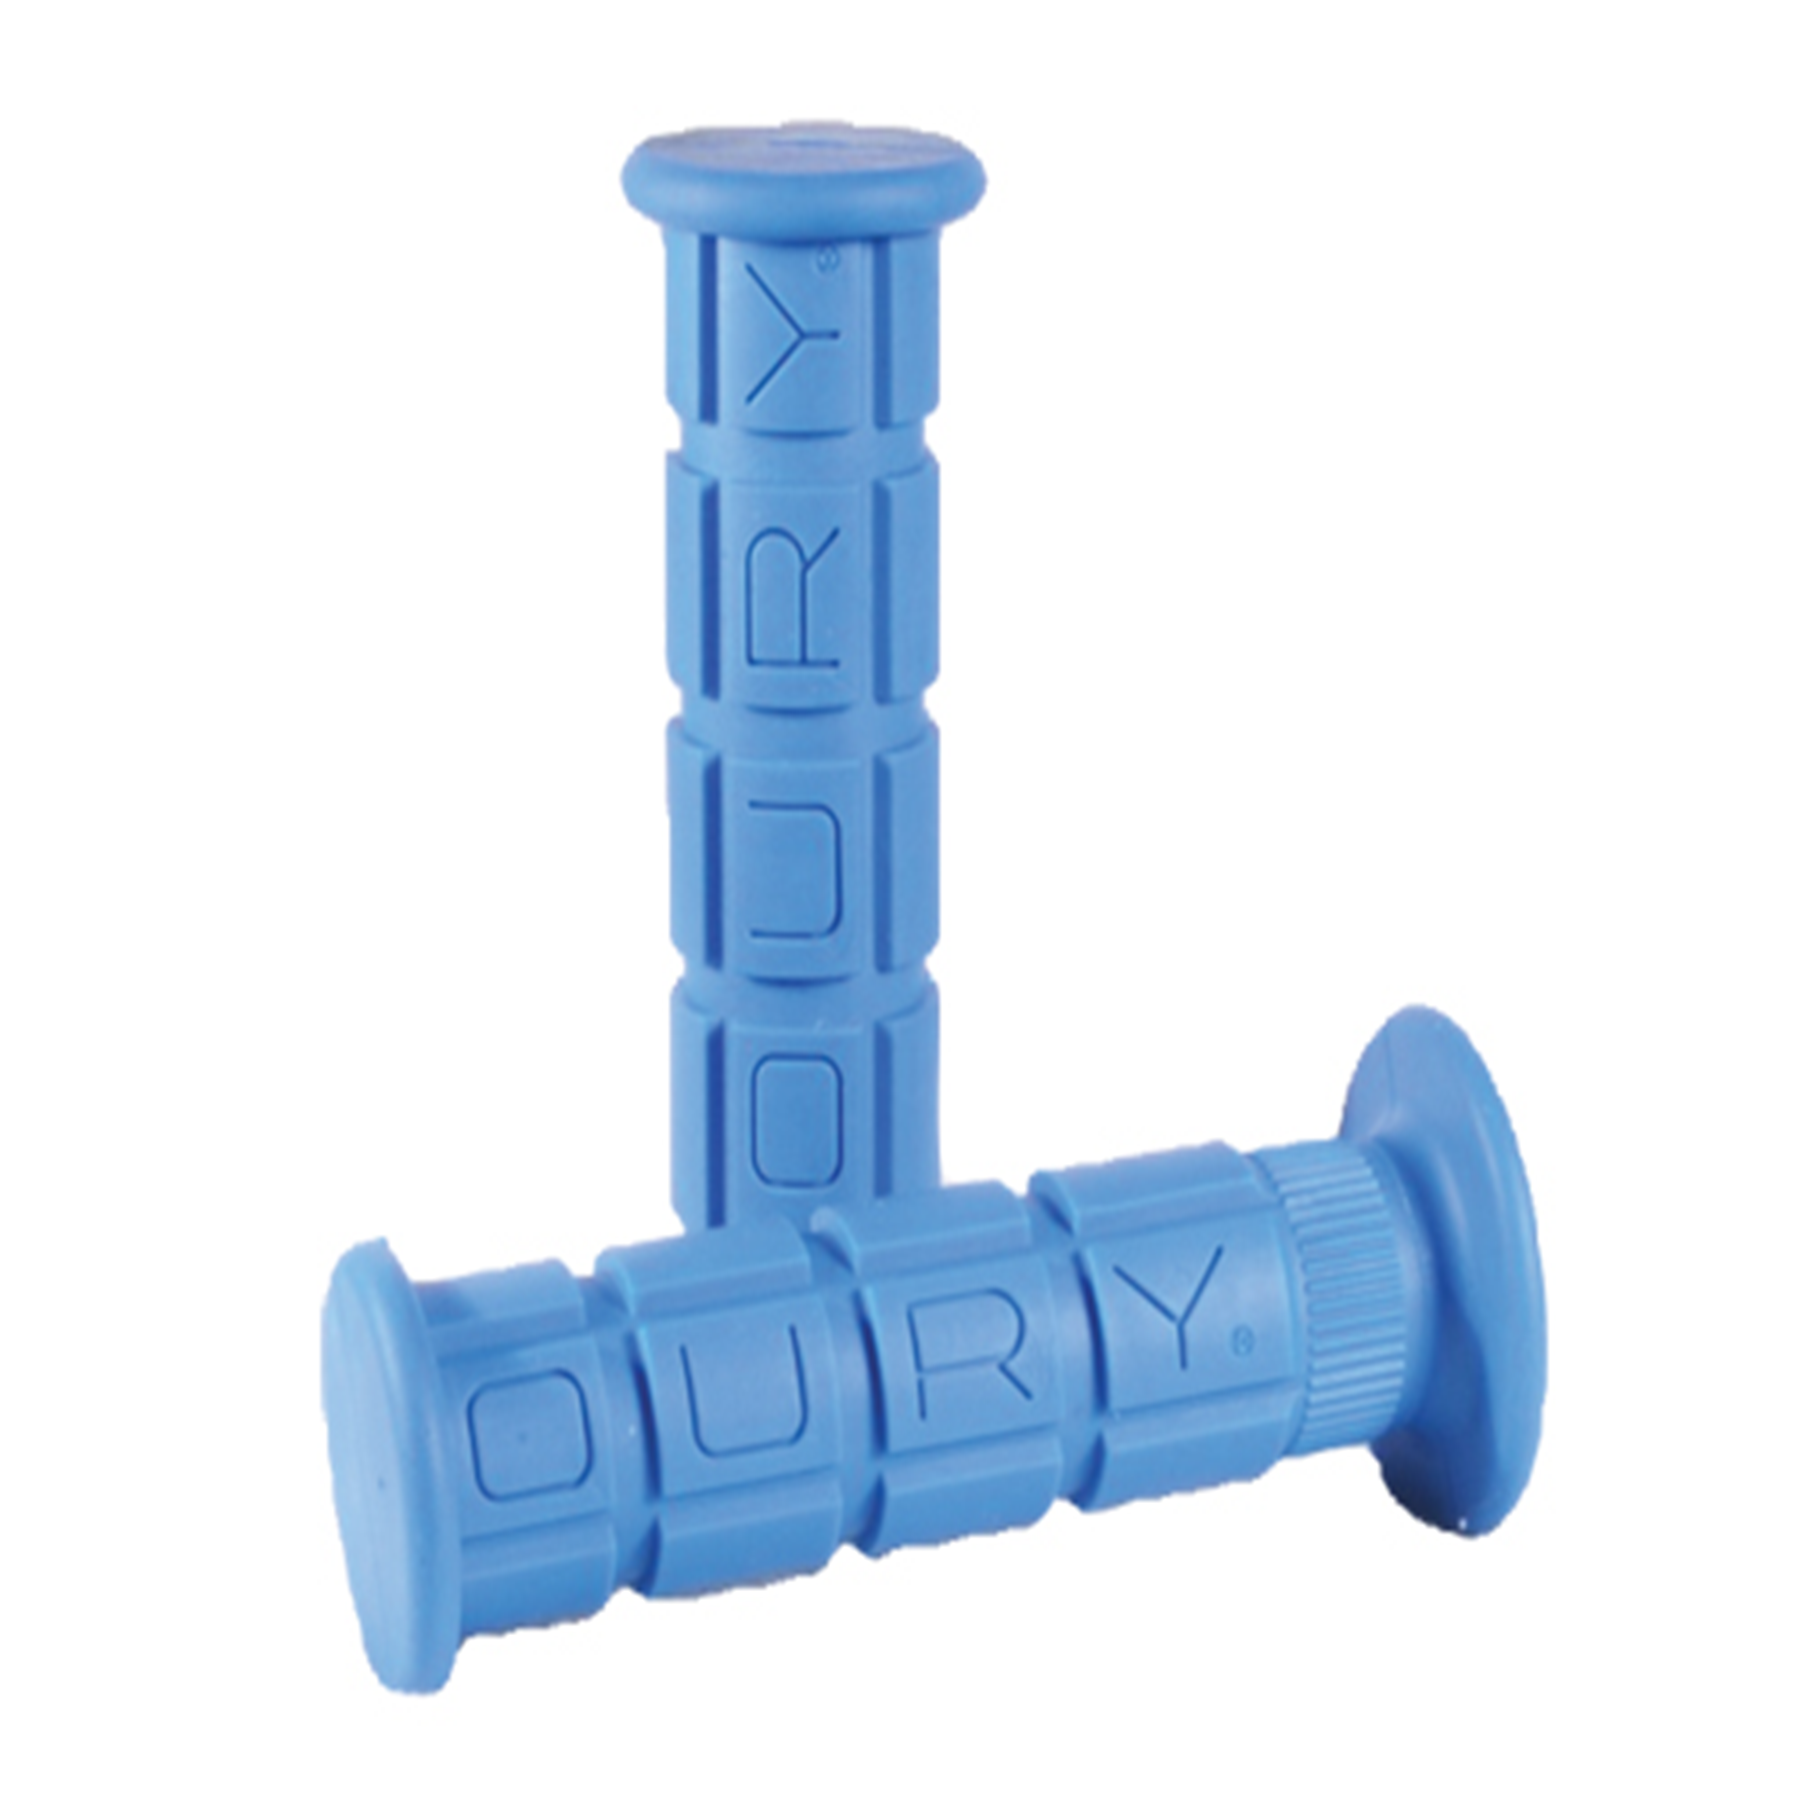 OURY STD GRIP/BLUE/LOW FLANGE